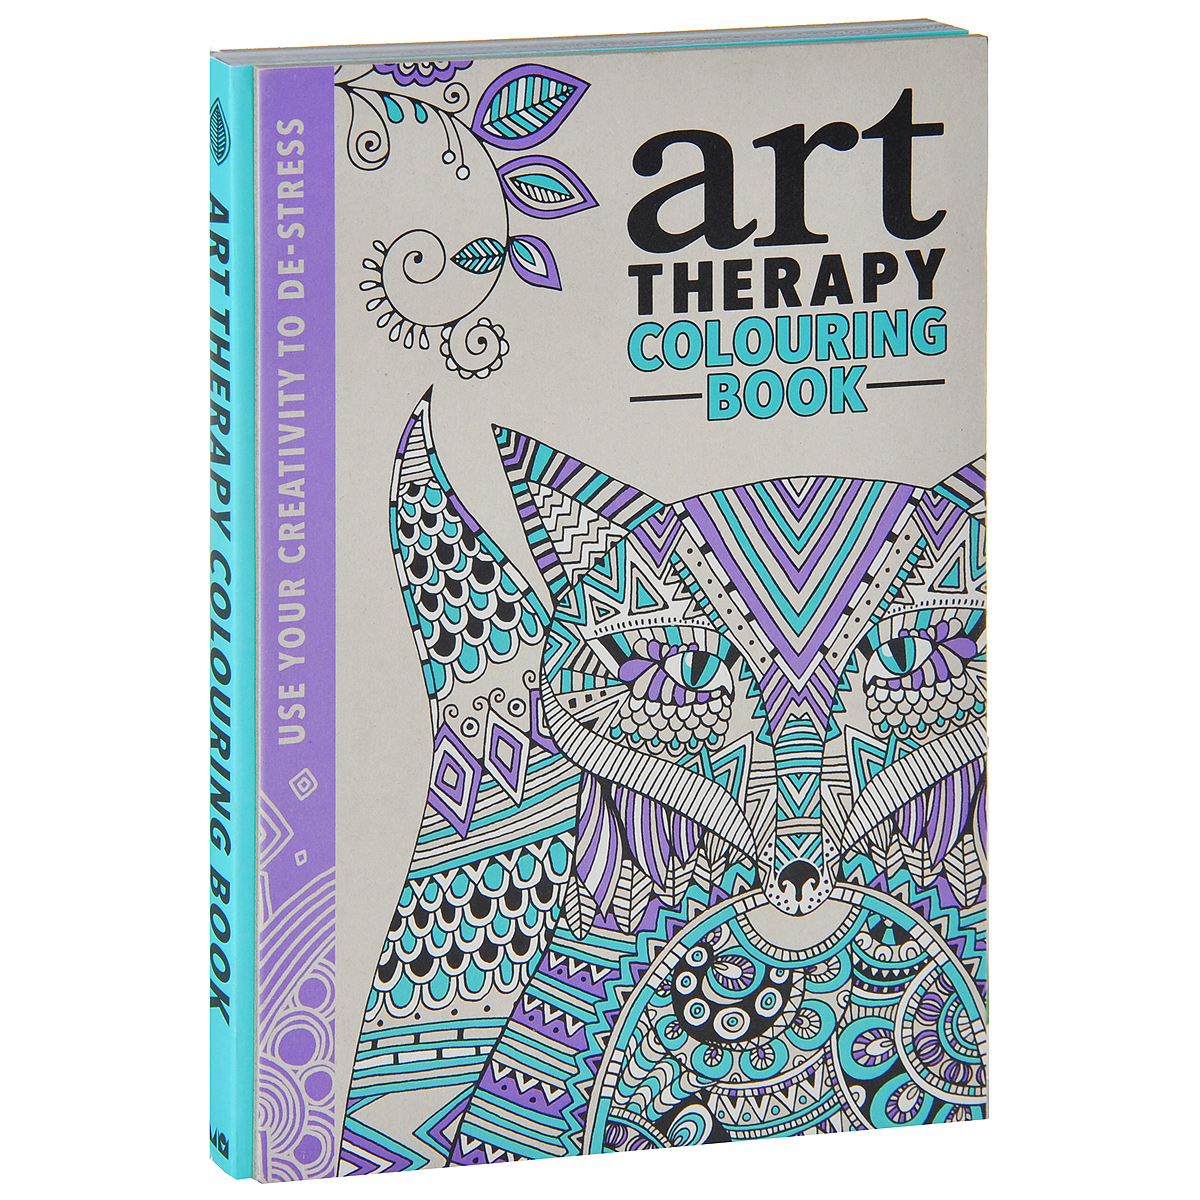 Art Therapy Colouring Book art creativity and art education